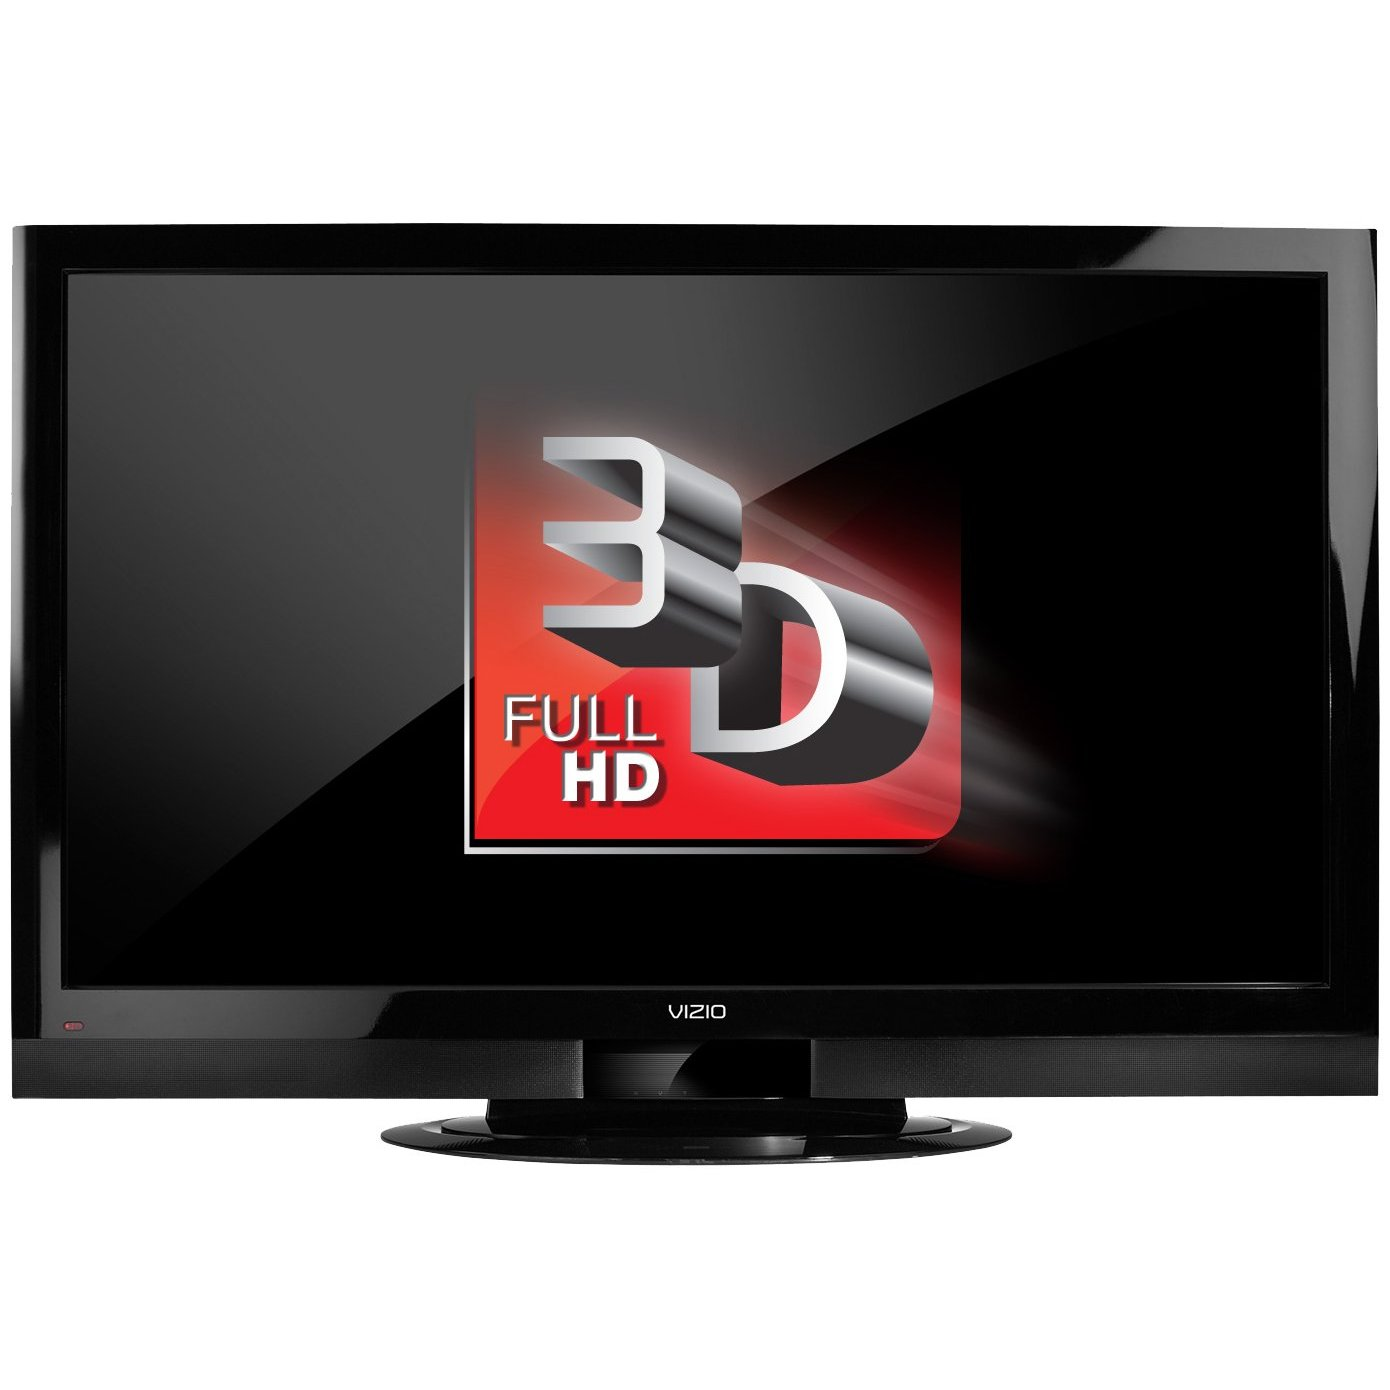 Vizio TV – XVT3D424SV 3D LED